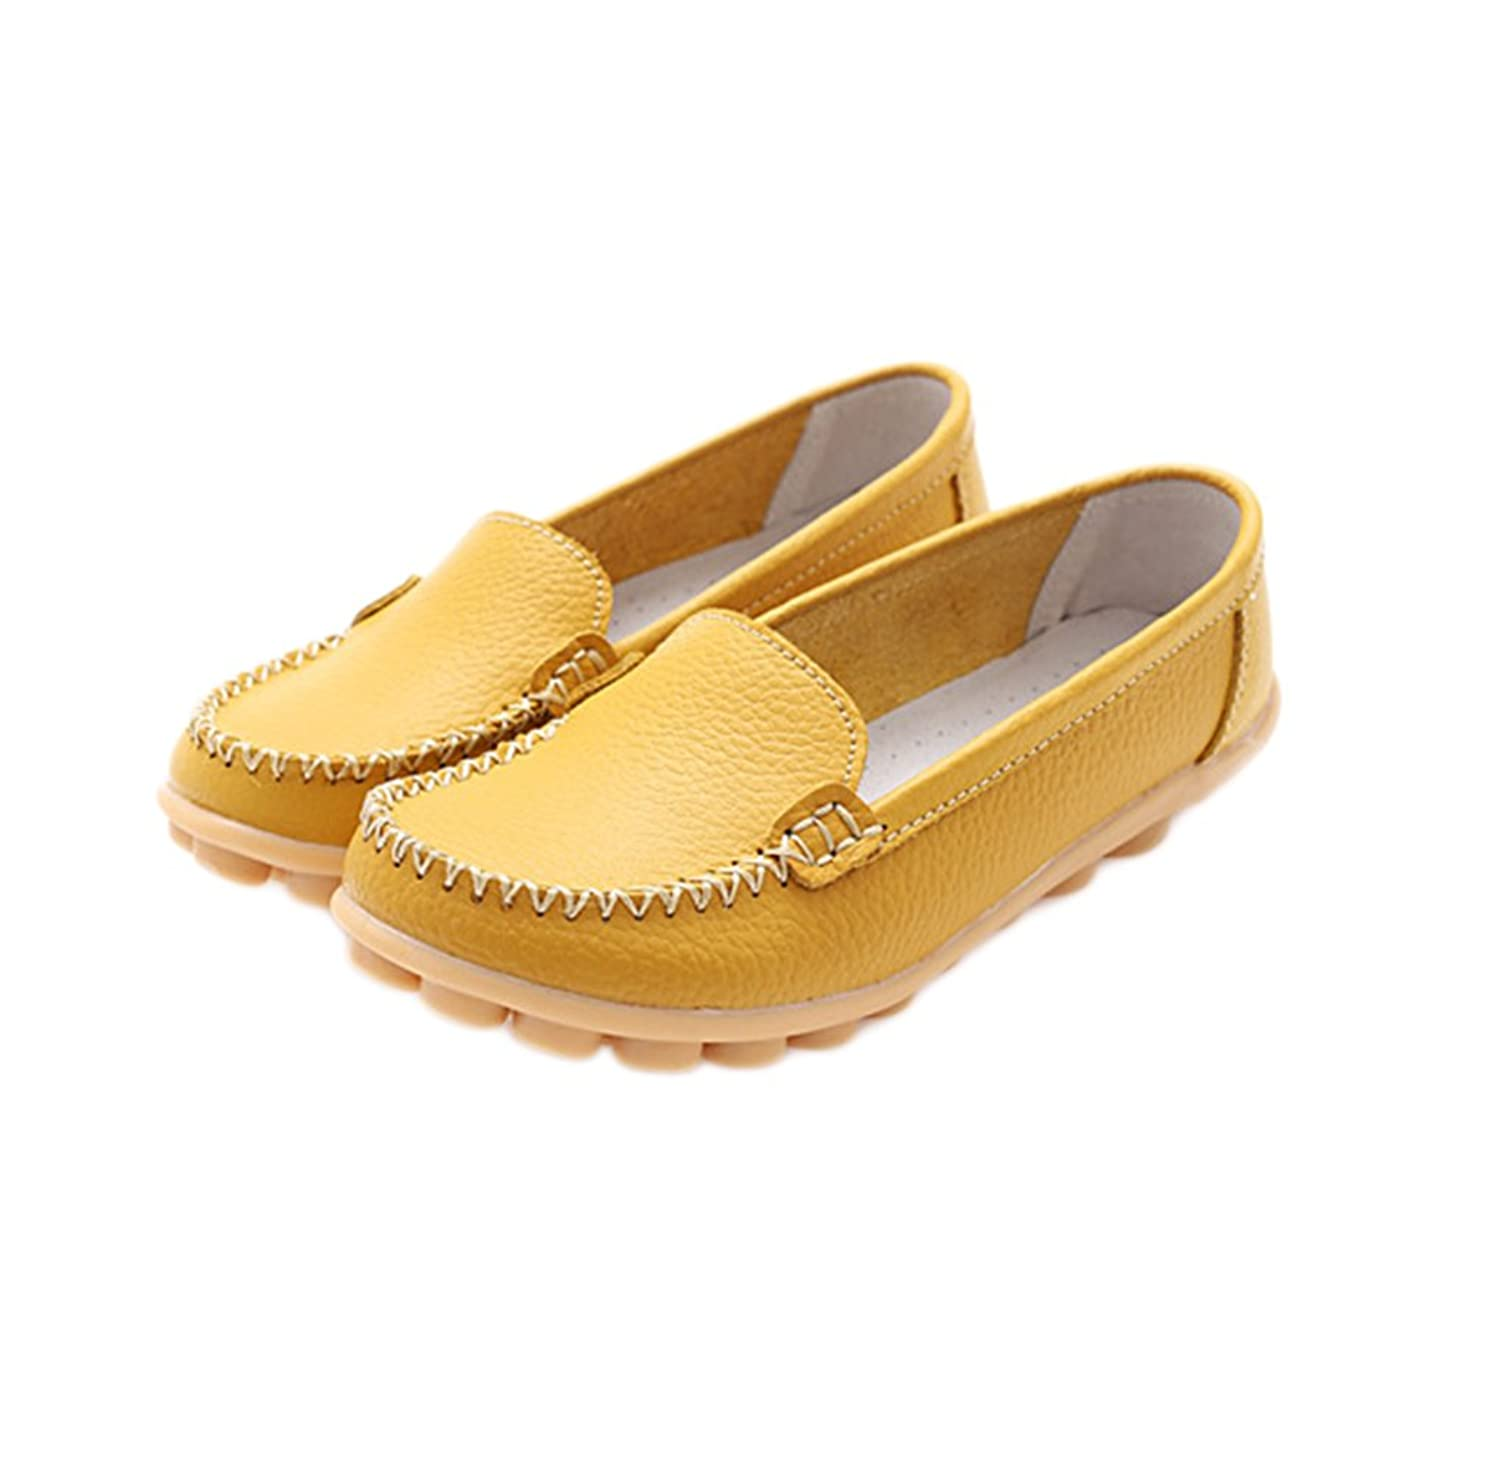 Womens Leather Cowhide Casual Flat Driving Loafers Slip On Boat Shoes